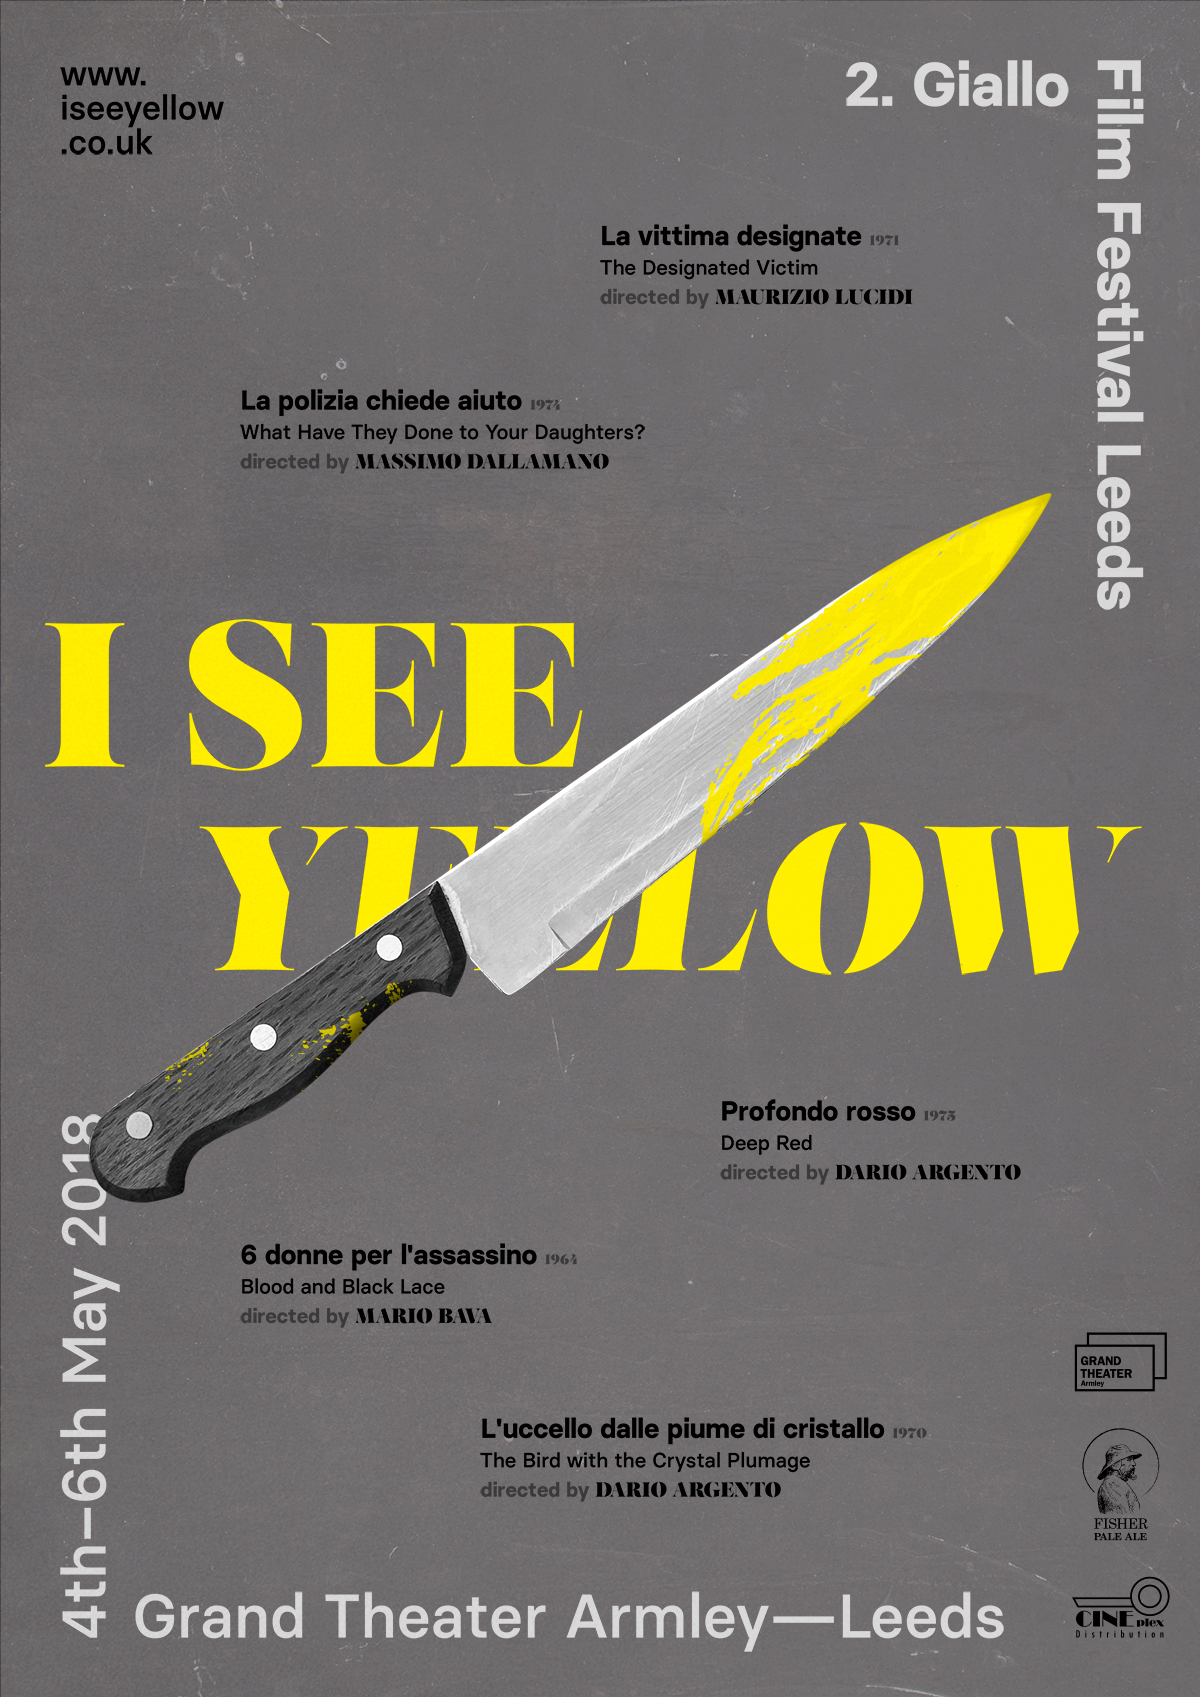 Film festival i see yellow poster 02